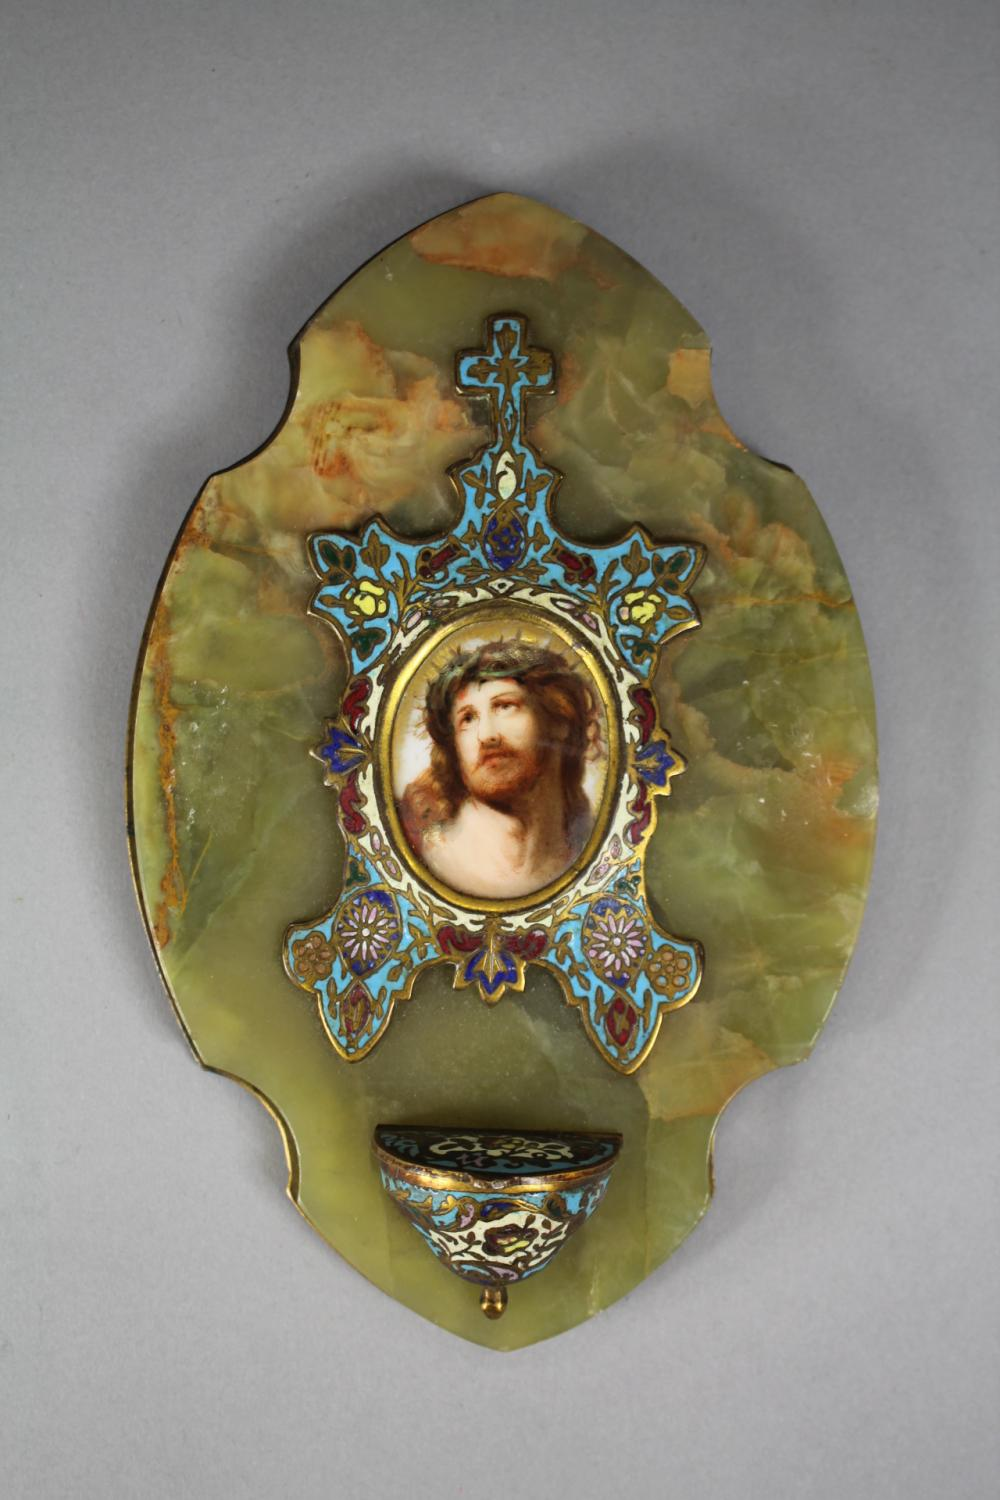 Antique French green onyx & champleve enamel blessing font, central portrait of our Lord & Saviour Jesus Christ, approx 18cm H x 12cm W